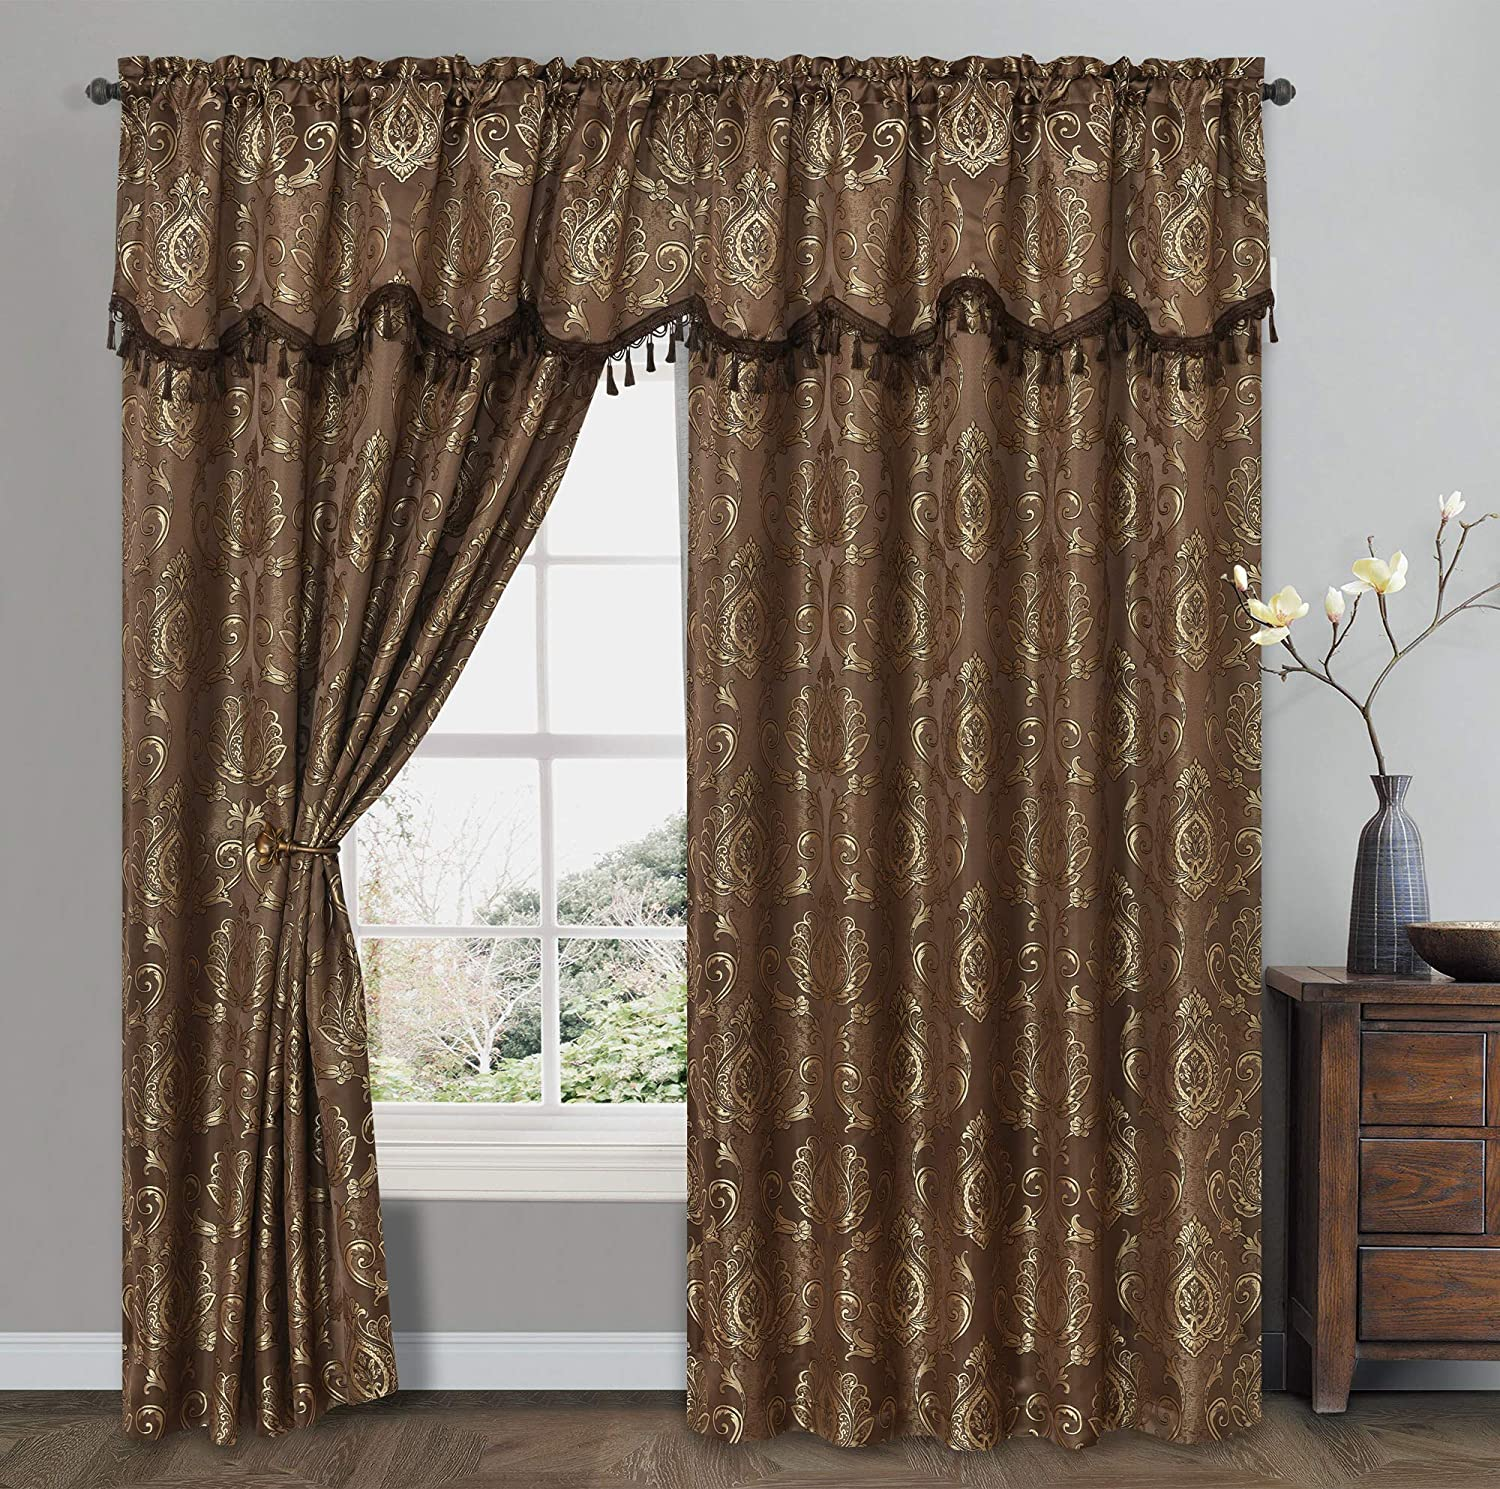 GOHD Golden Ocean Home Decor Simple Classic. Jacquard Window Curtain Panel Drape with Attached Wave Valance. 2pcs Set. Each pc 54 inches Wide x 84 inches Drop with Valance. (Brown)